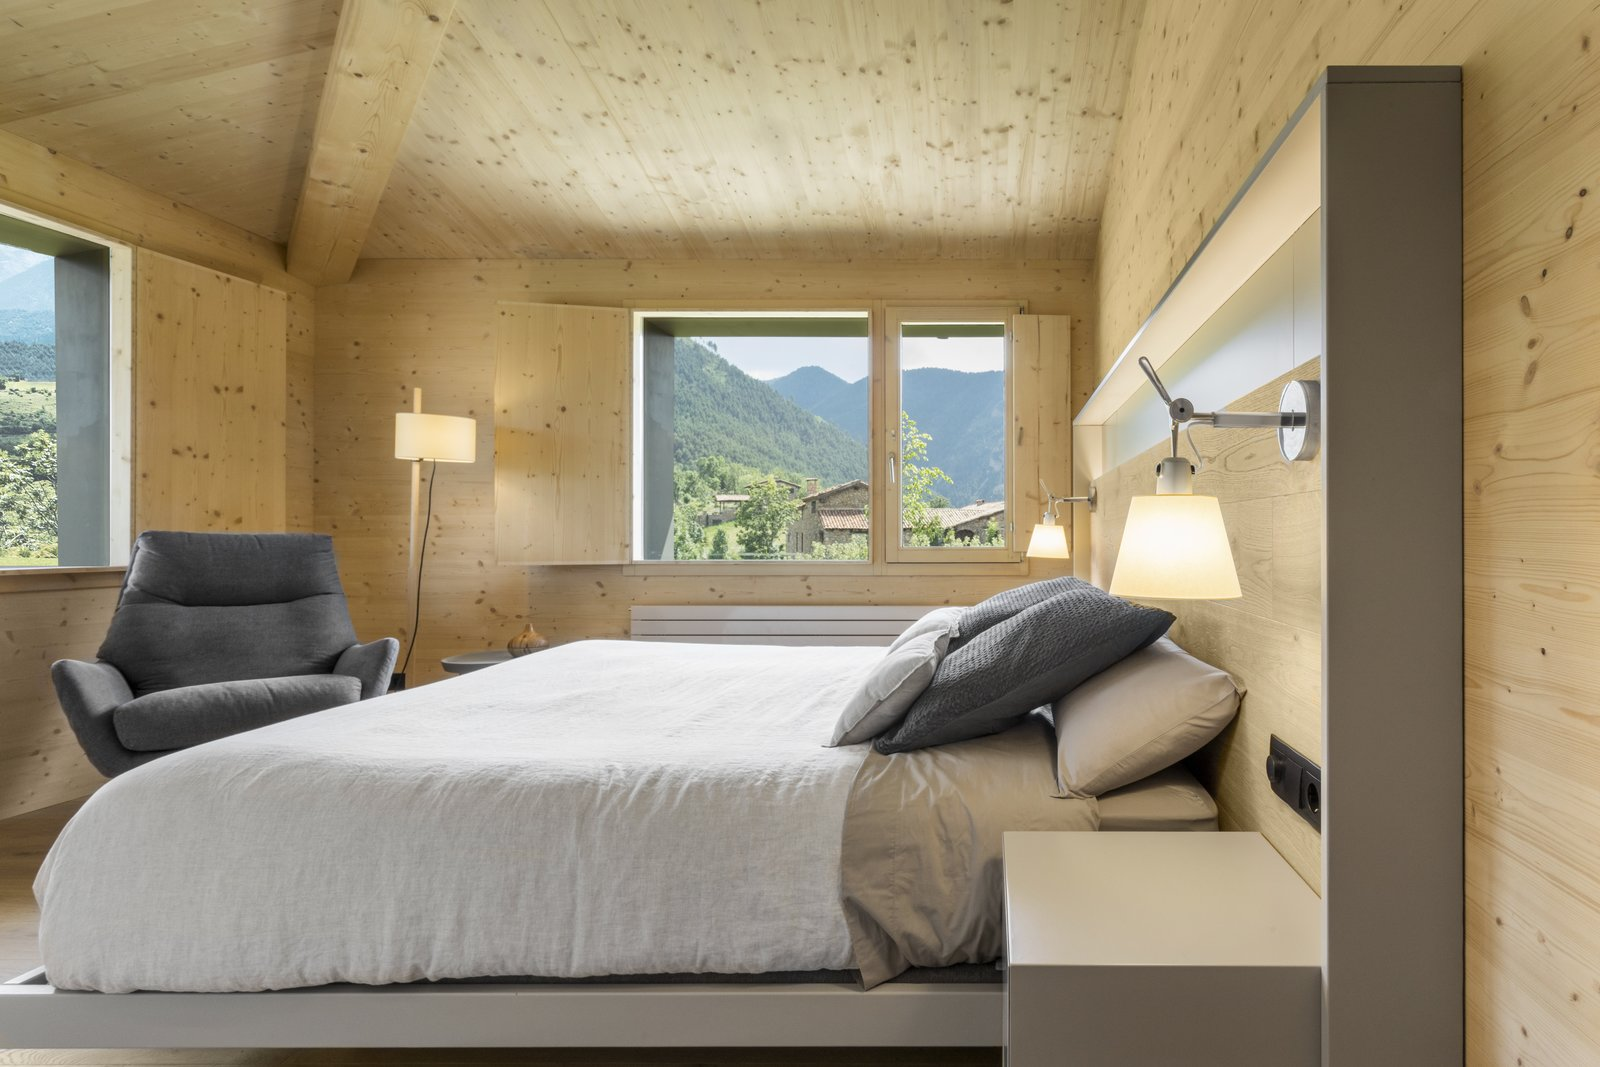 Bedroom, Floor, Chair, Bed, Light Hardwood, Night Stands, Wall, Lamps, and Accent The house has three bedrooms with ensuite bathrooms.  Best Bedroom Floor Table Photos from A Winning Residence in the Spanish Pyrenees Mixes Modern and Rustic